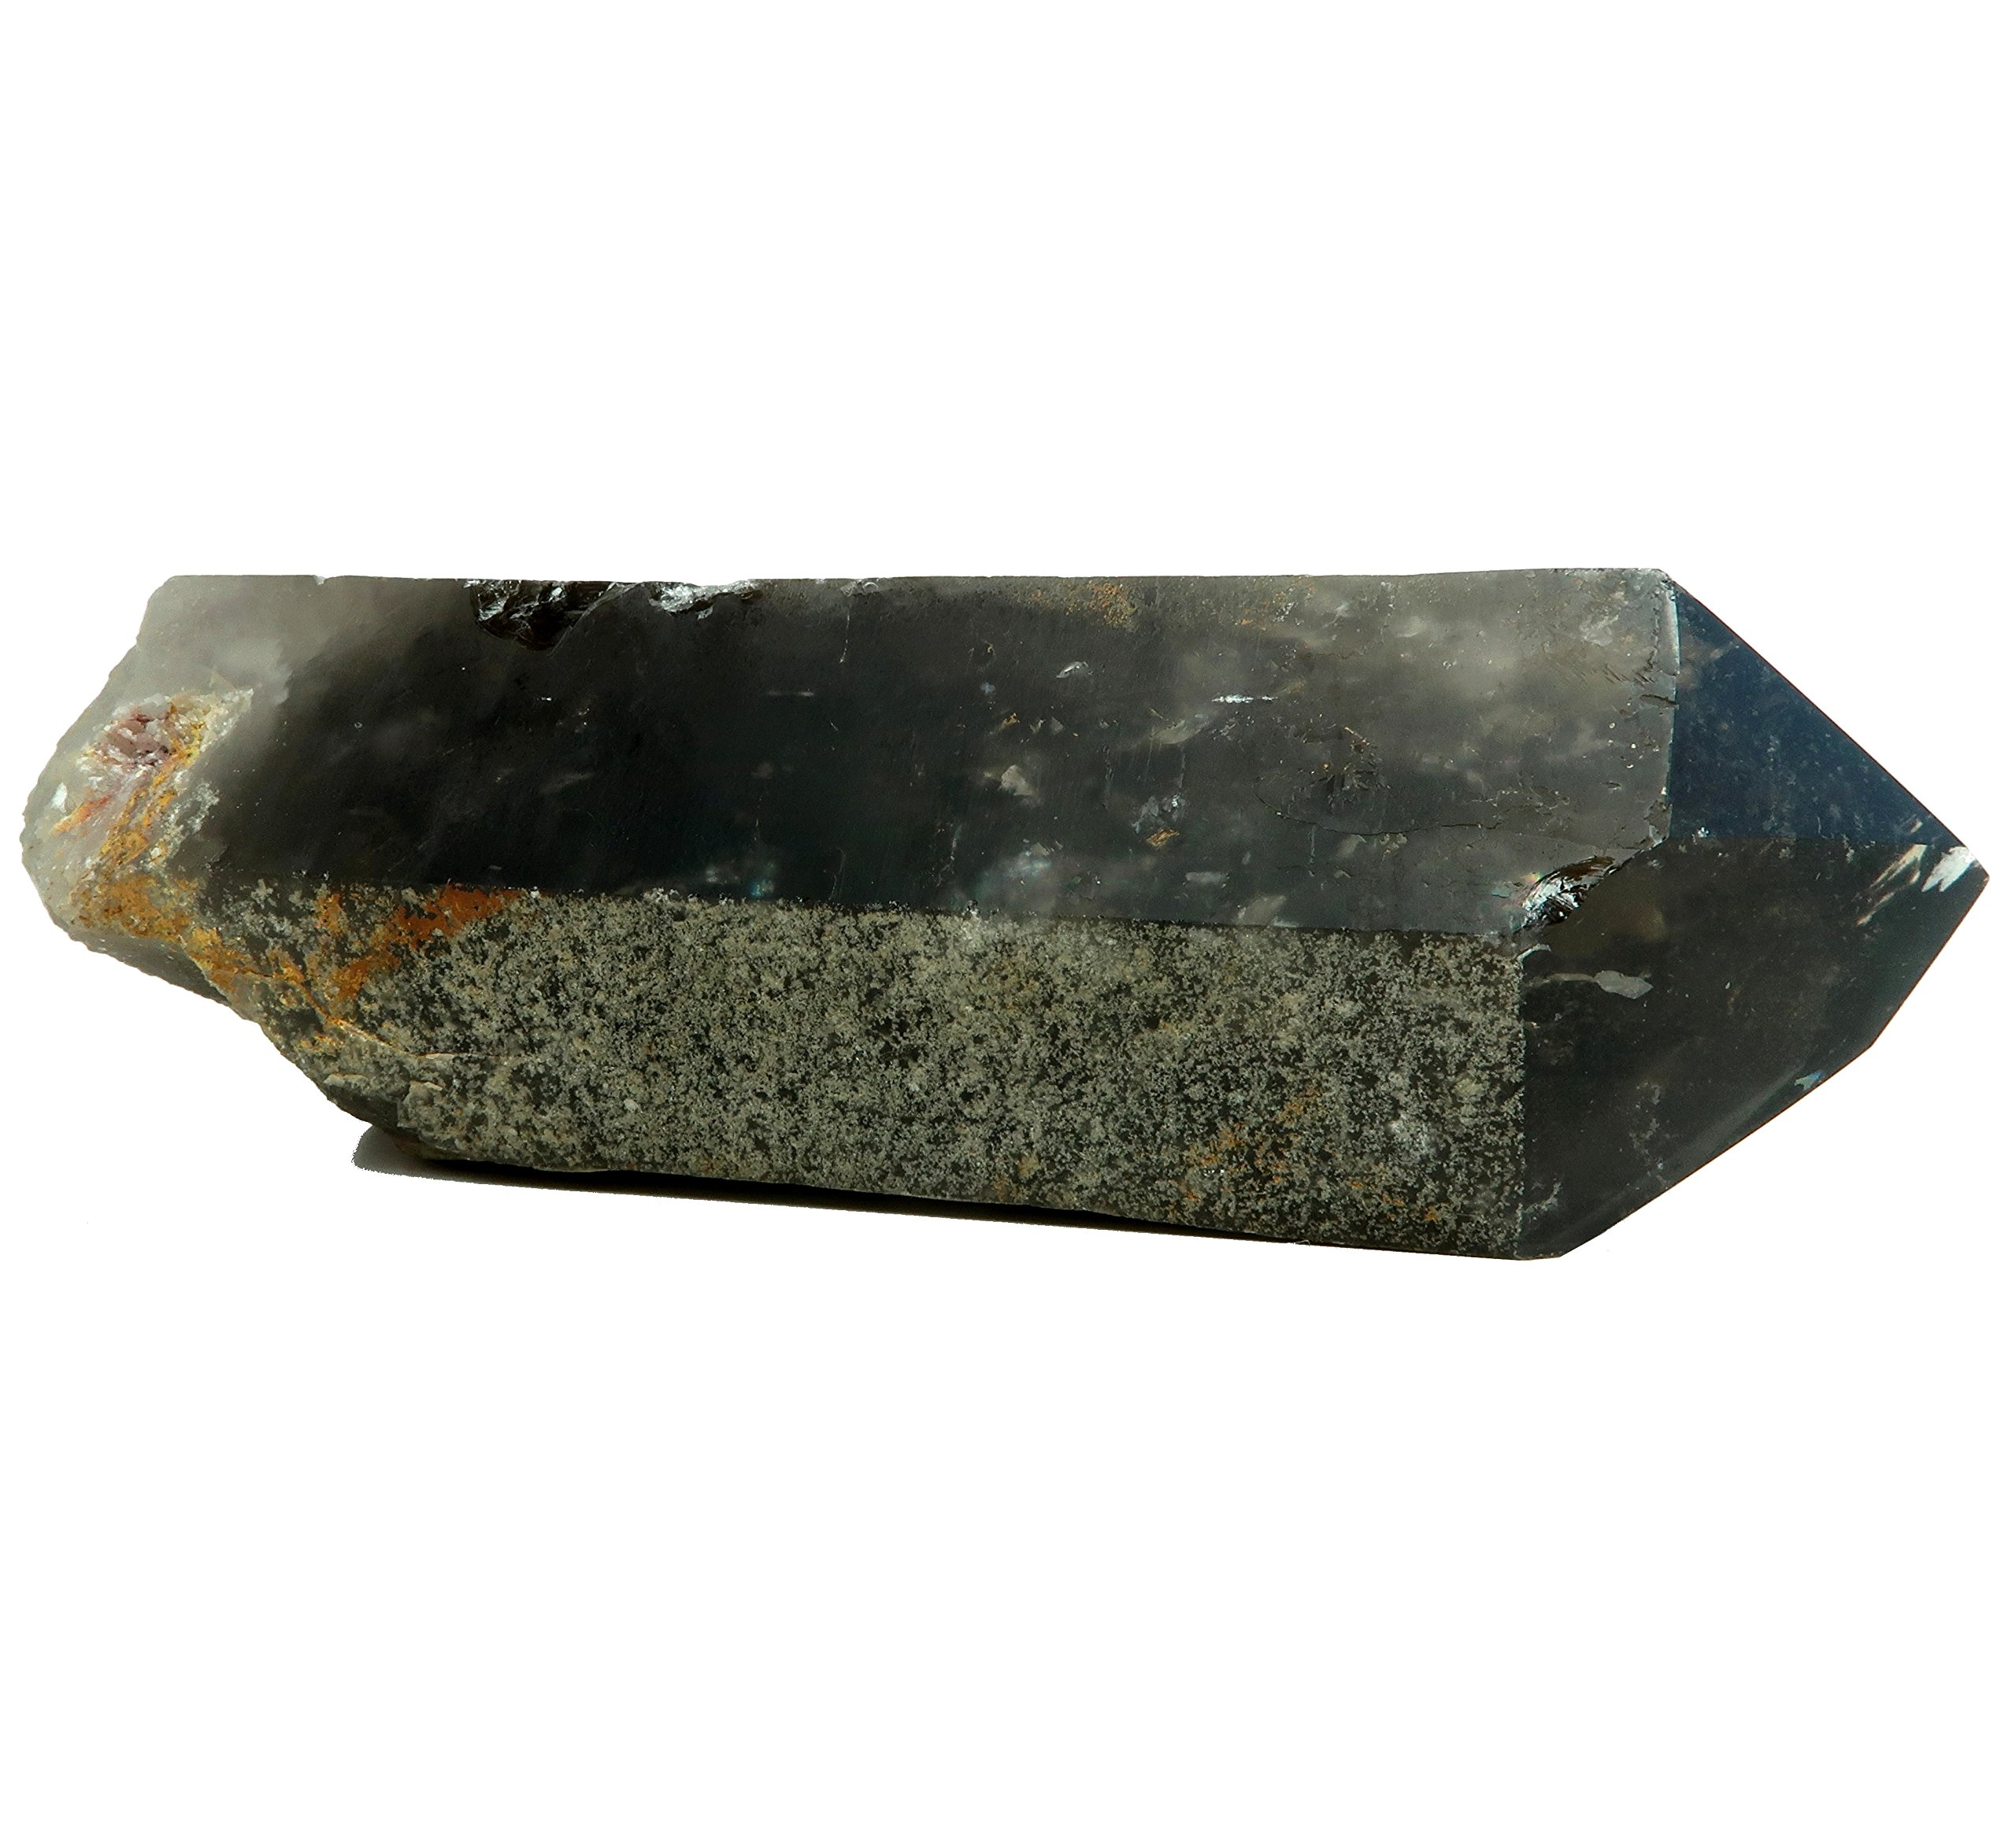 Smoky Quartz Wand 07 - Rough Point Chunky Stone Polished Tip (7.6 Inches, 2 Pounds)